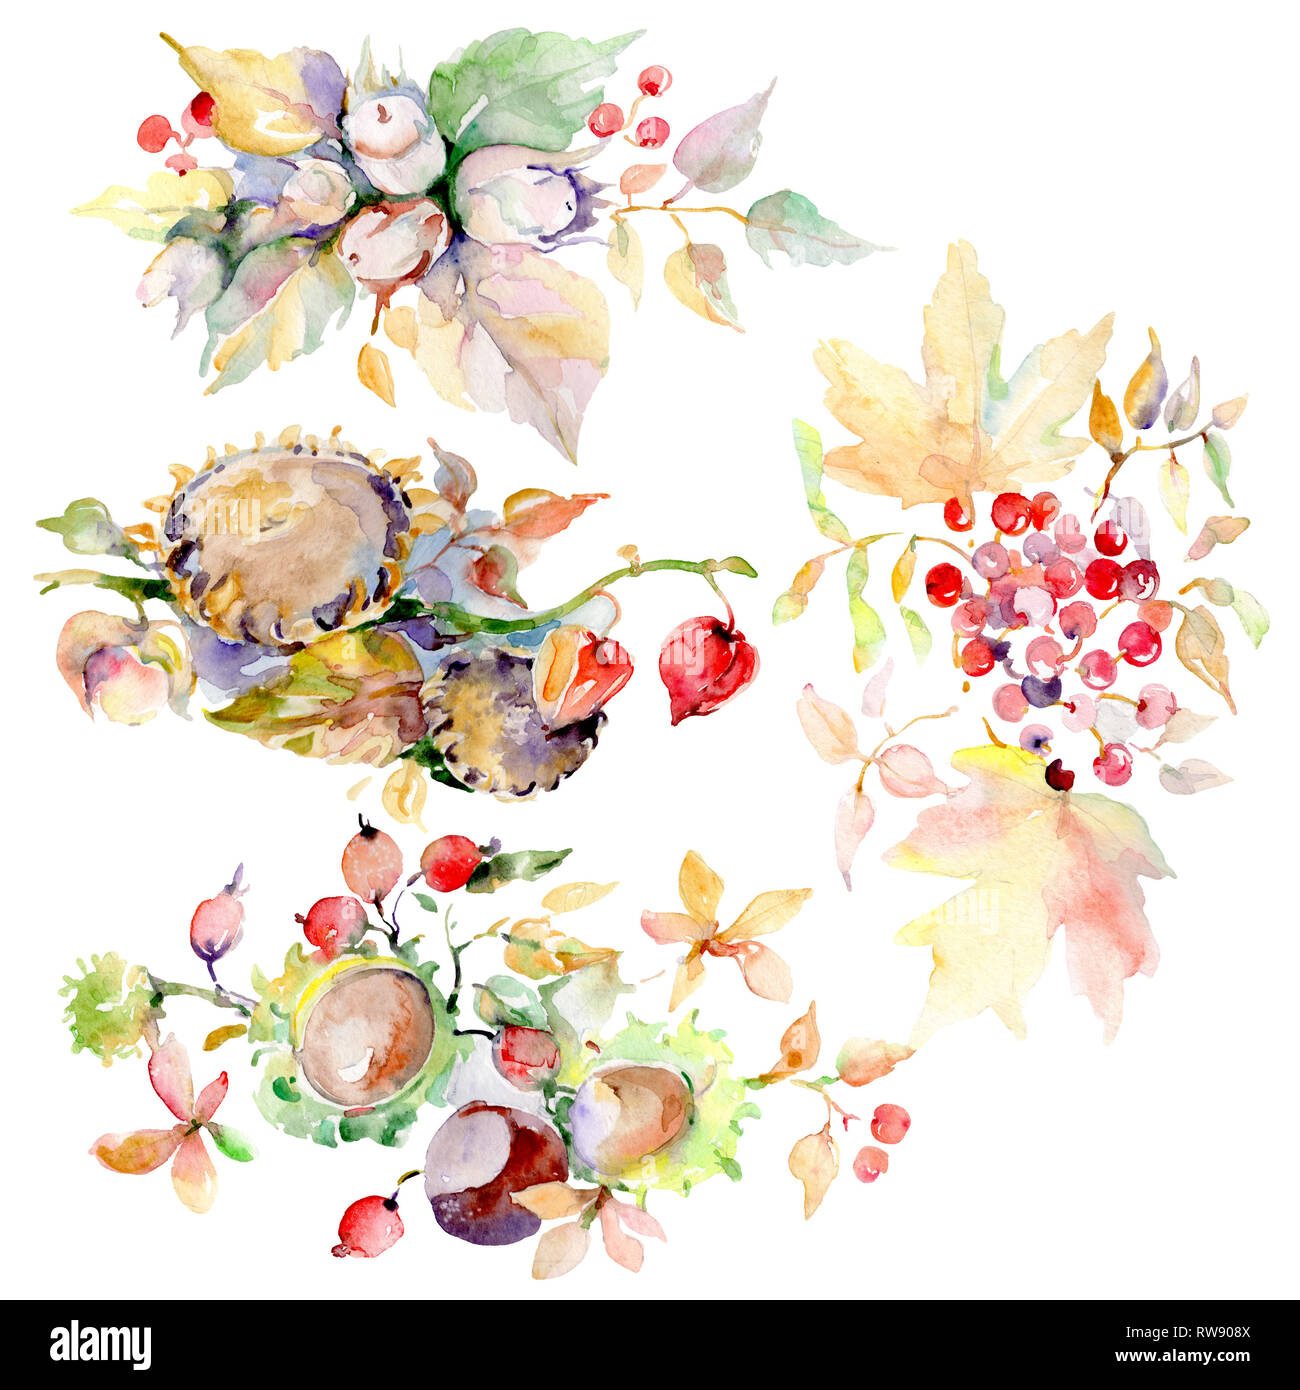 Bouquet Of Autumn Forest Fruits Wild Spring Leaf Isolated Watercolor Background Illustration Set Watercolour Drawing Fashion Aquarelle Isolated Bo Stock Photo Alamy